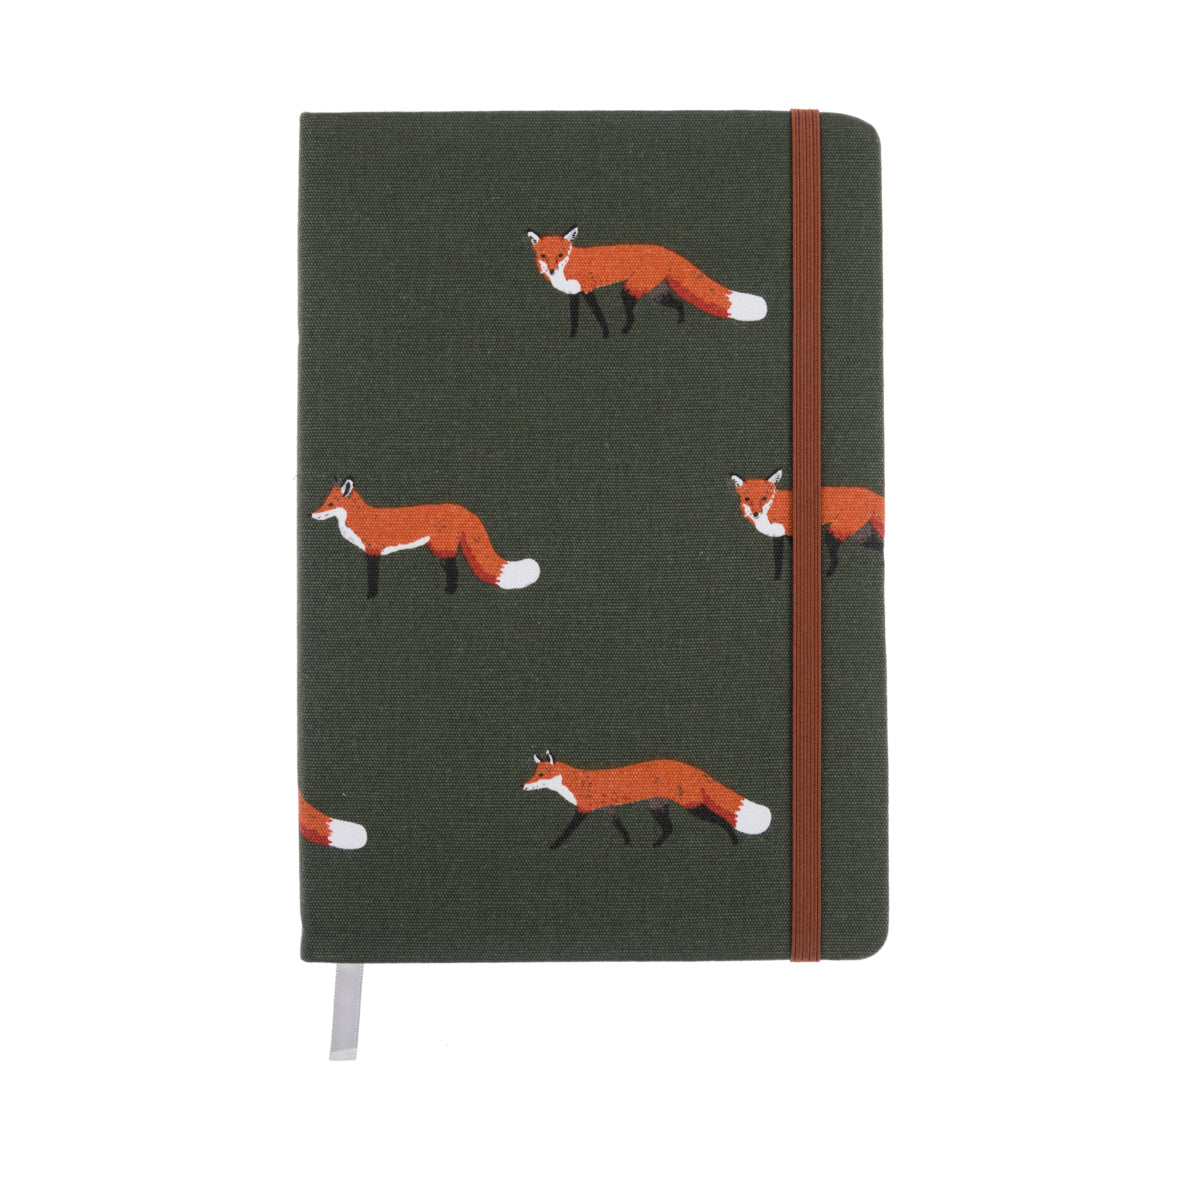 Foxes Notebook